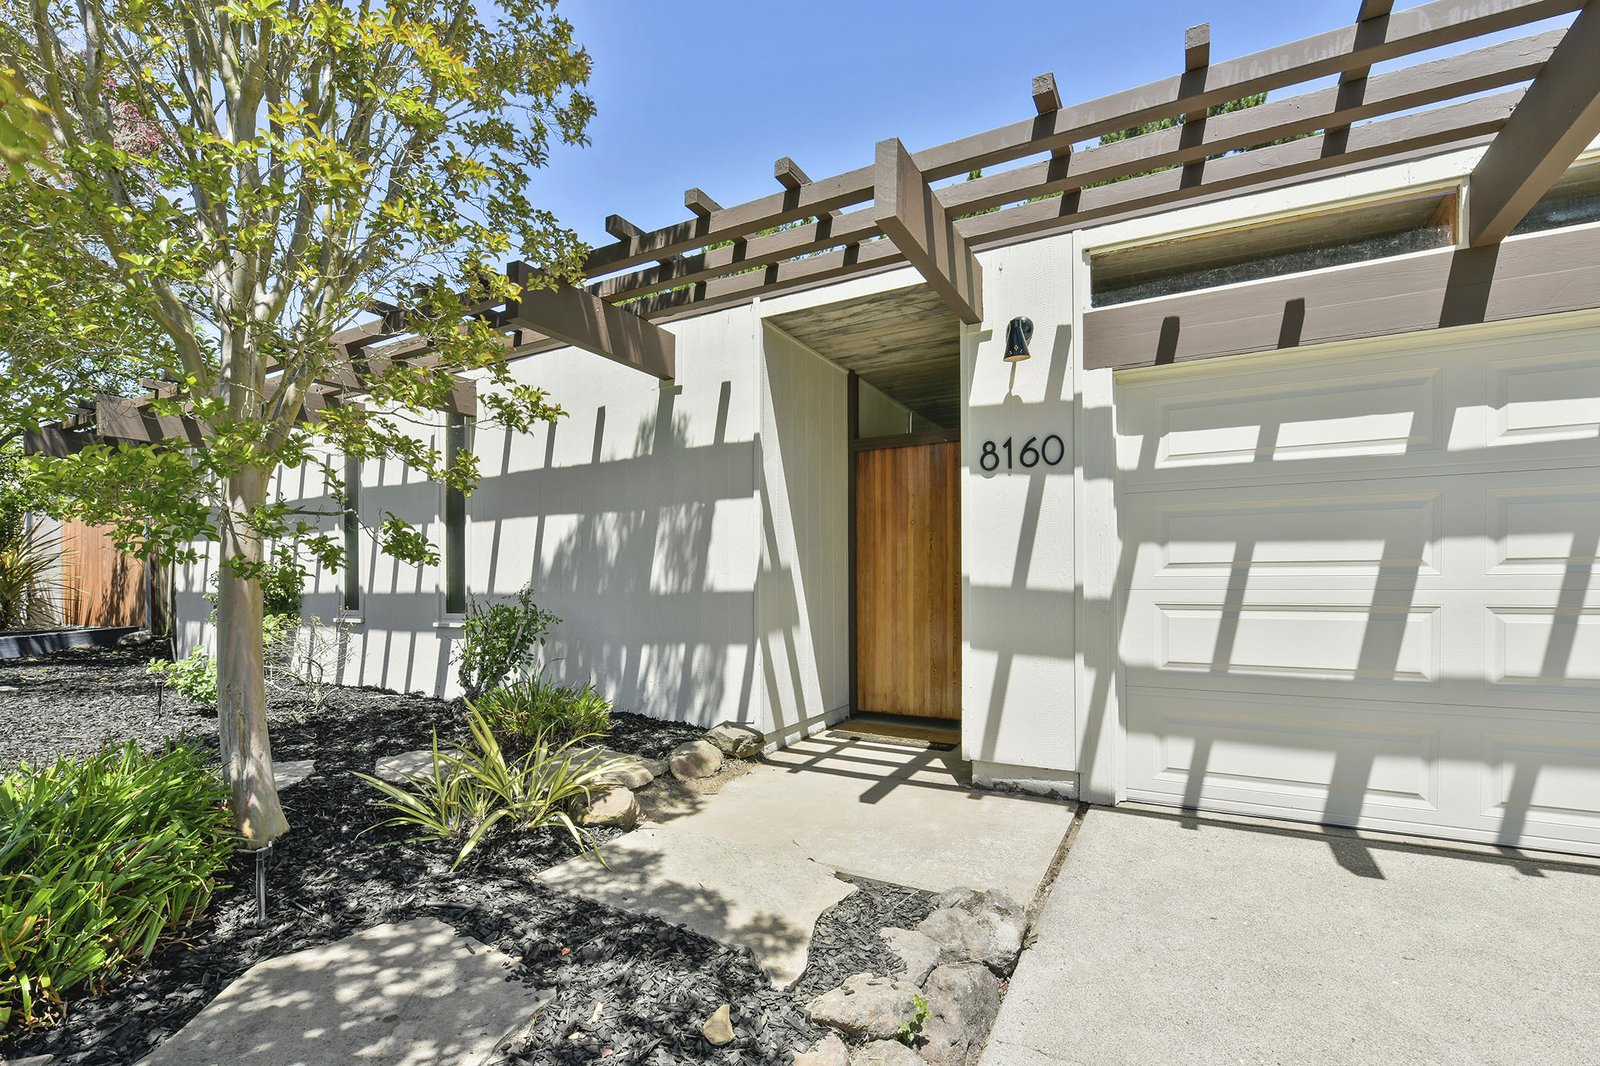 A Bay Area Eichler With a Streamlined Facade Asks $1.15M